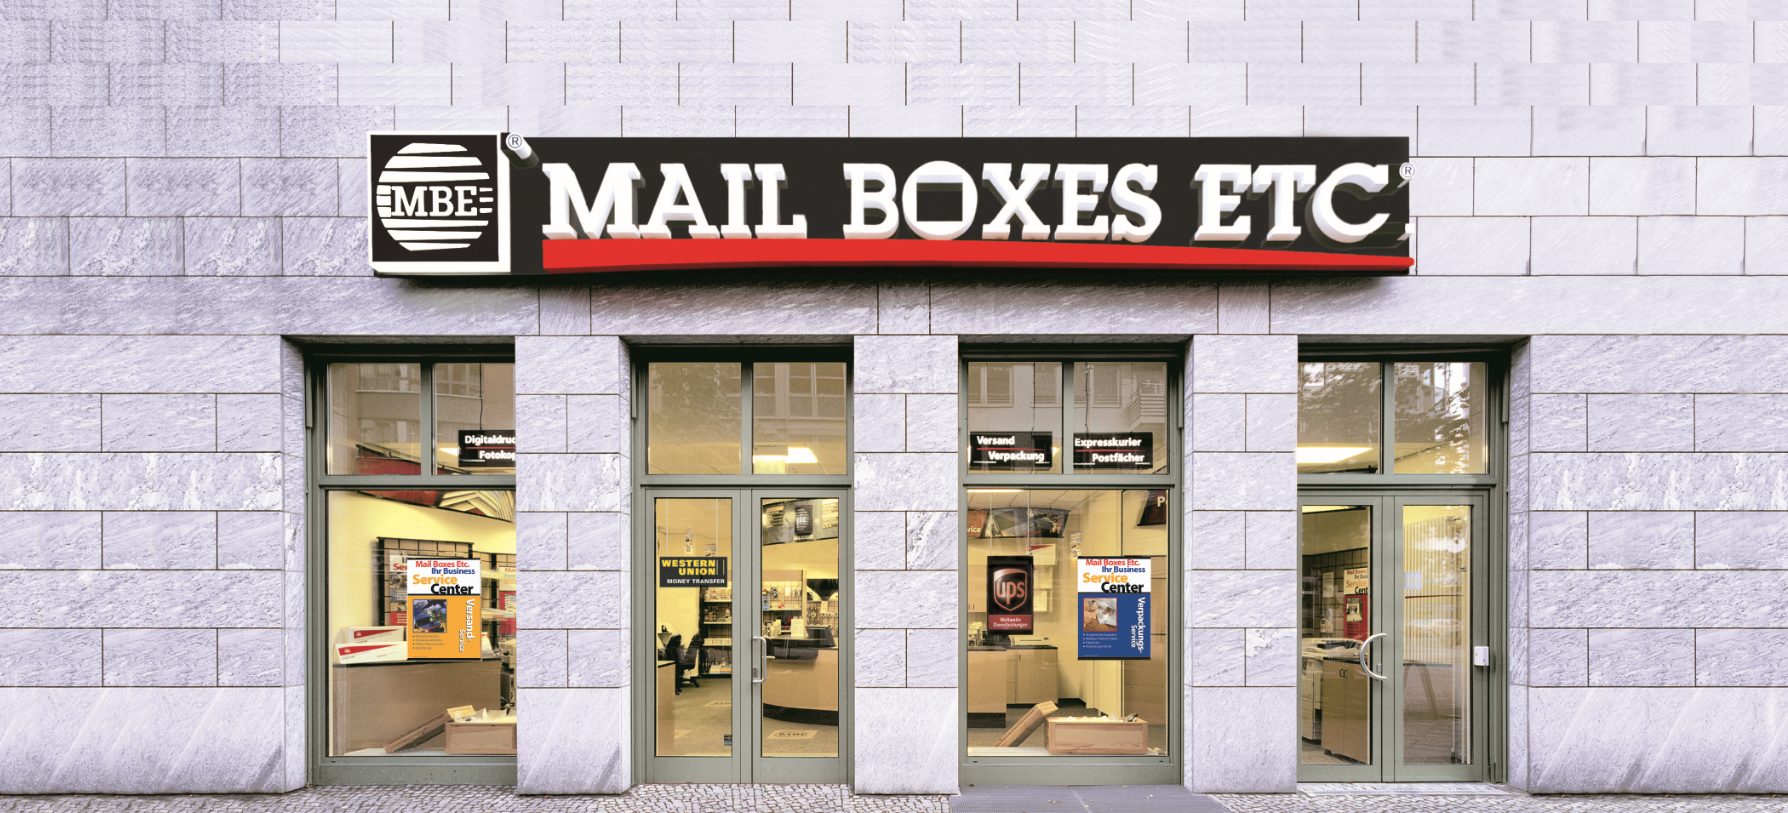 Bild der Mail Boxes Etc. - Center MBE 0197